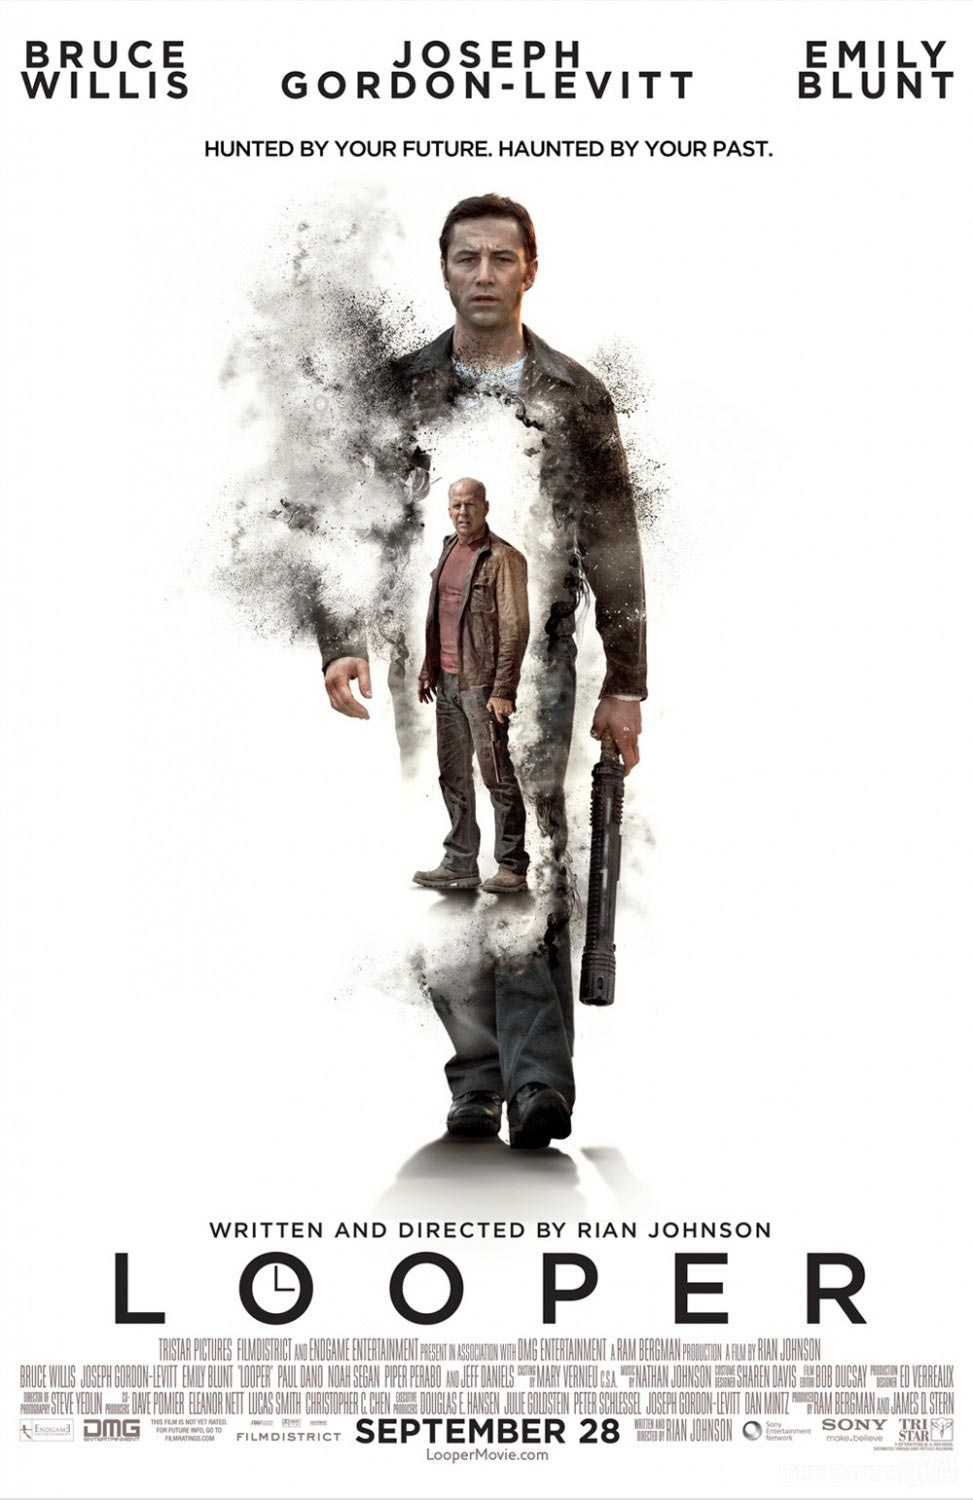 Looper review: Lower your expectations and you'll love it